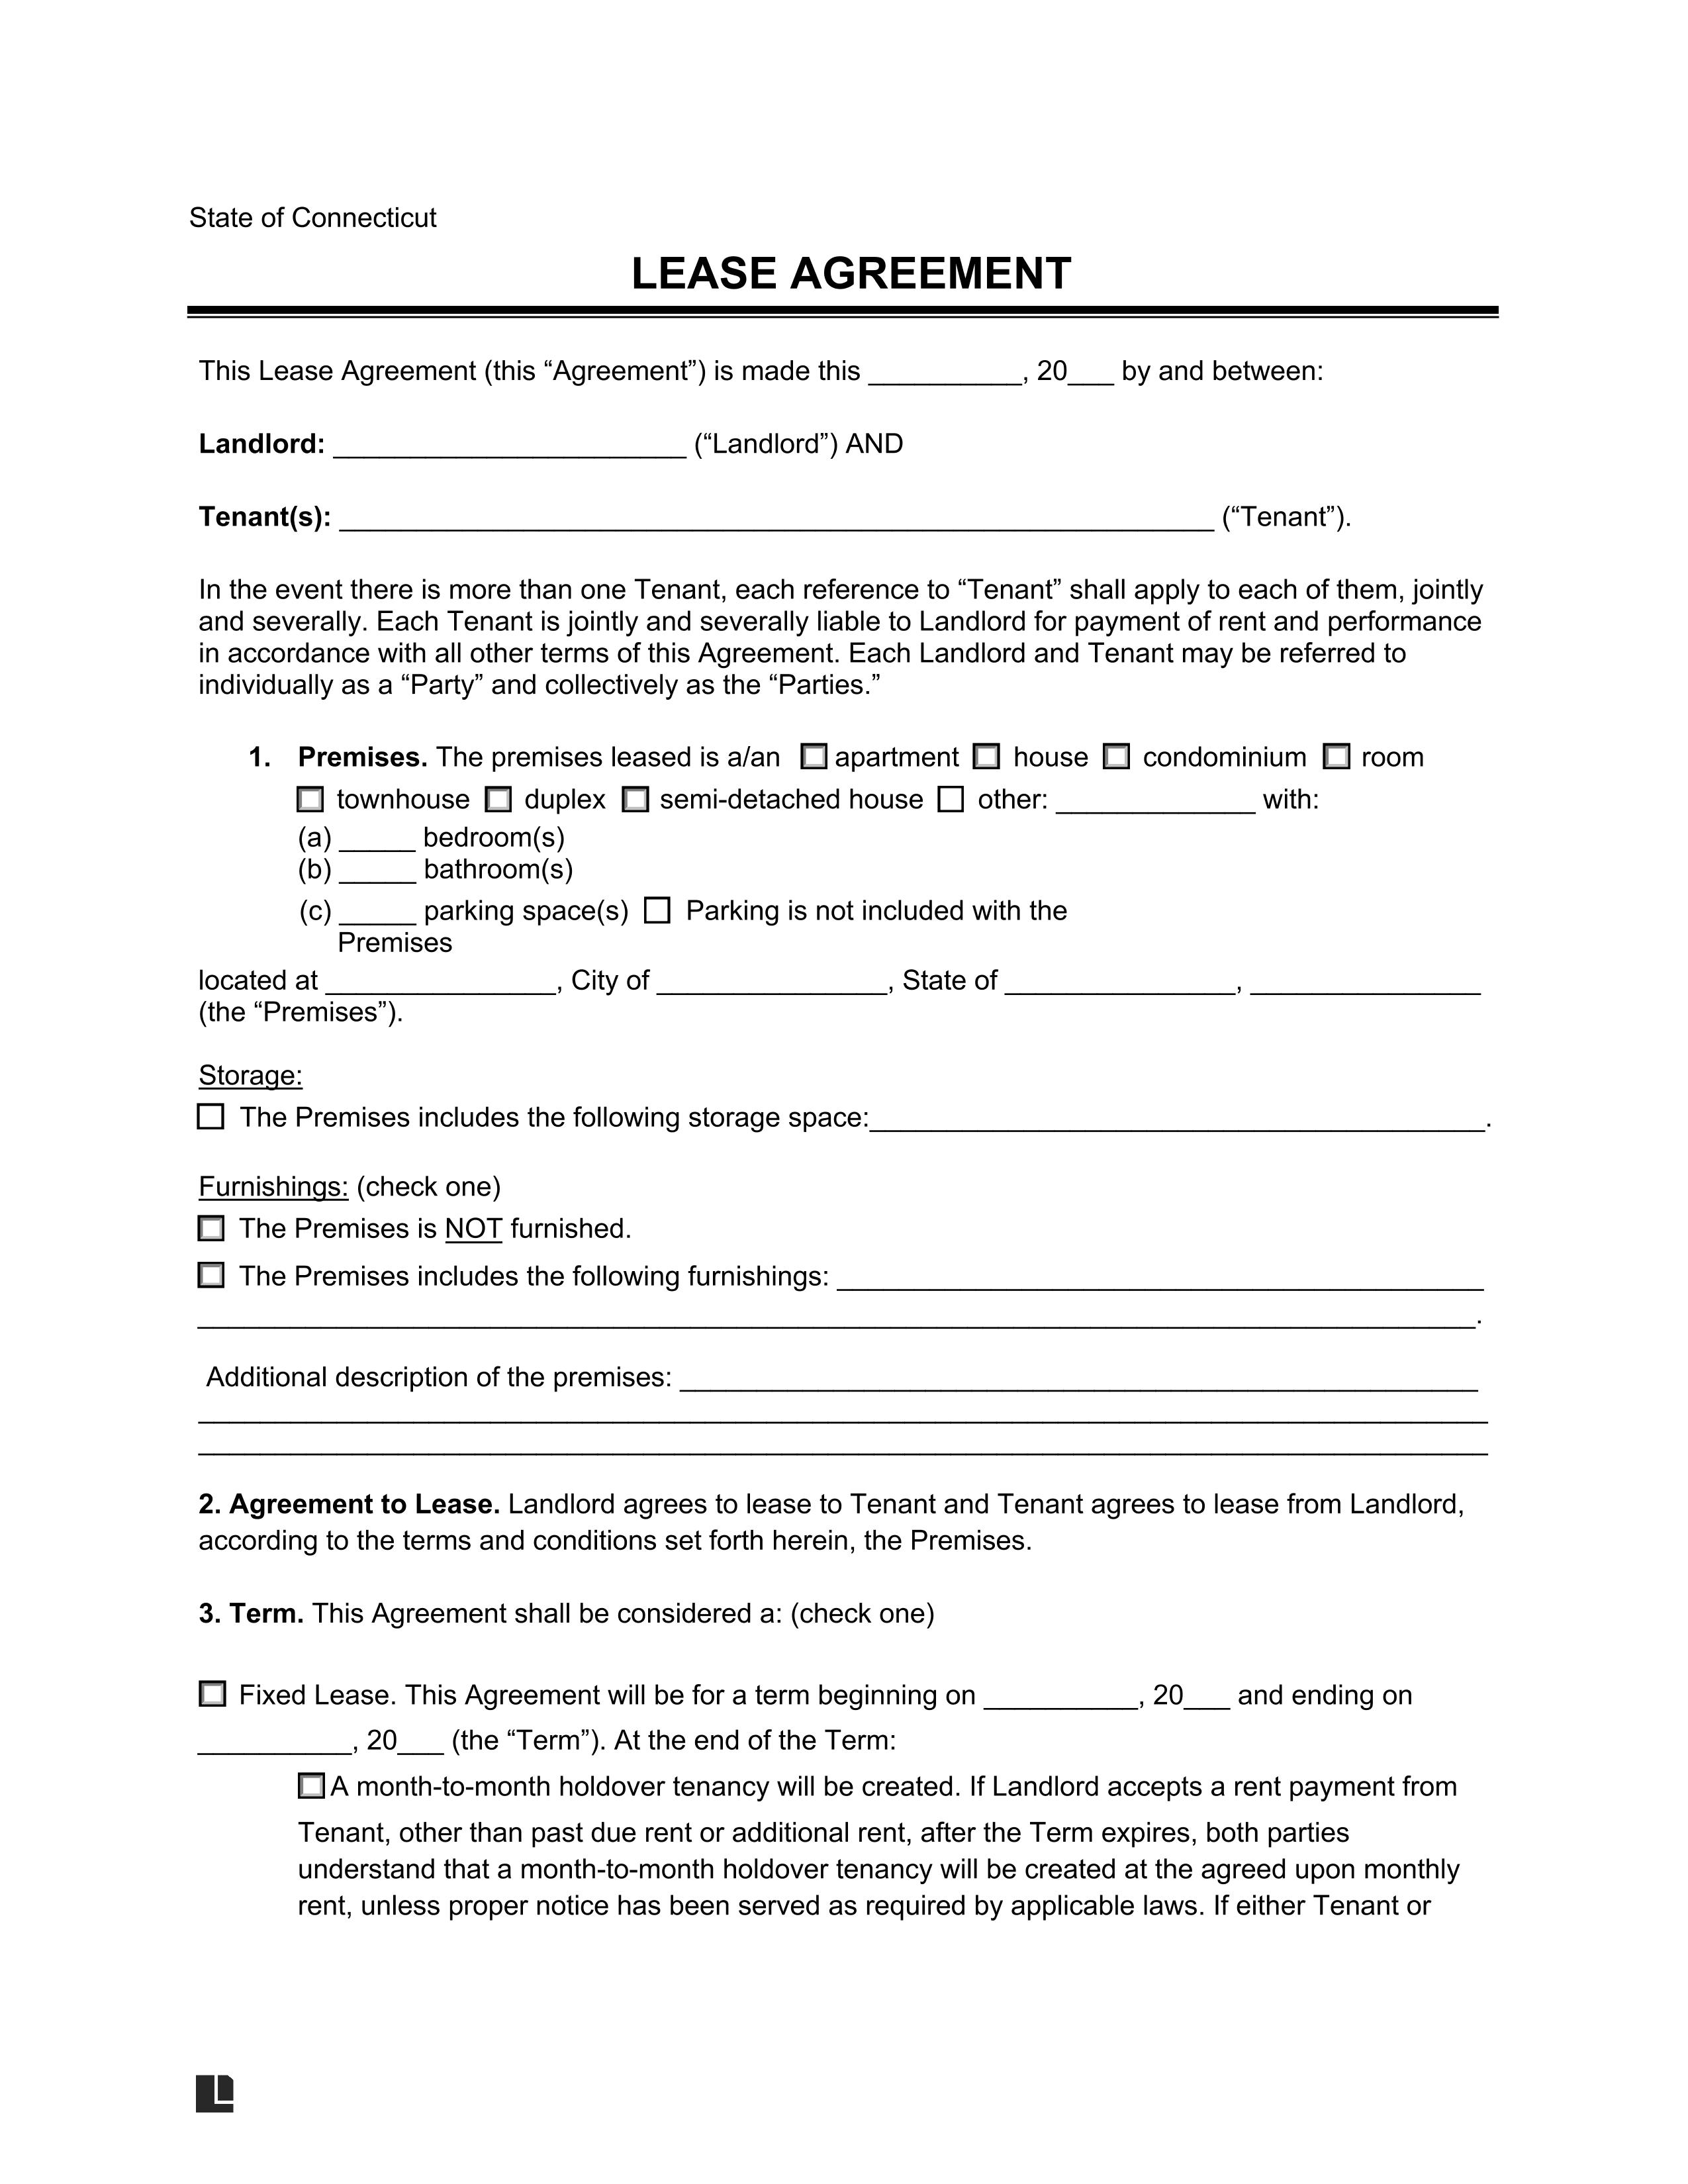 residential-lease-agreement